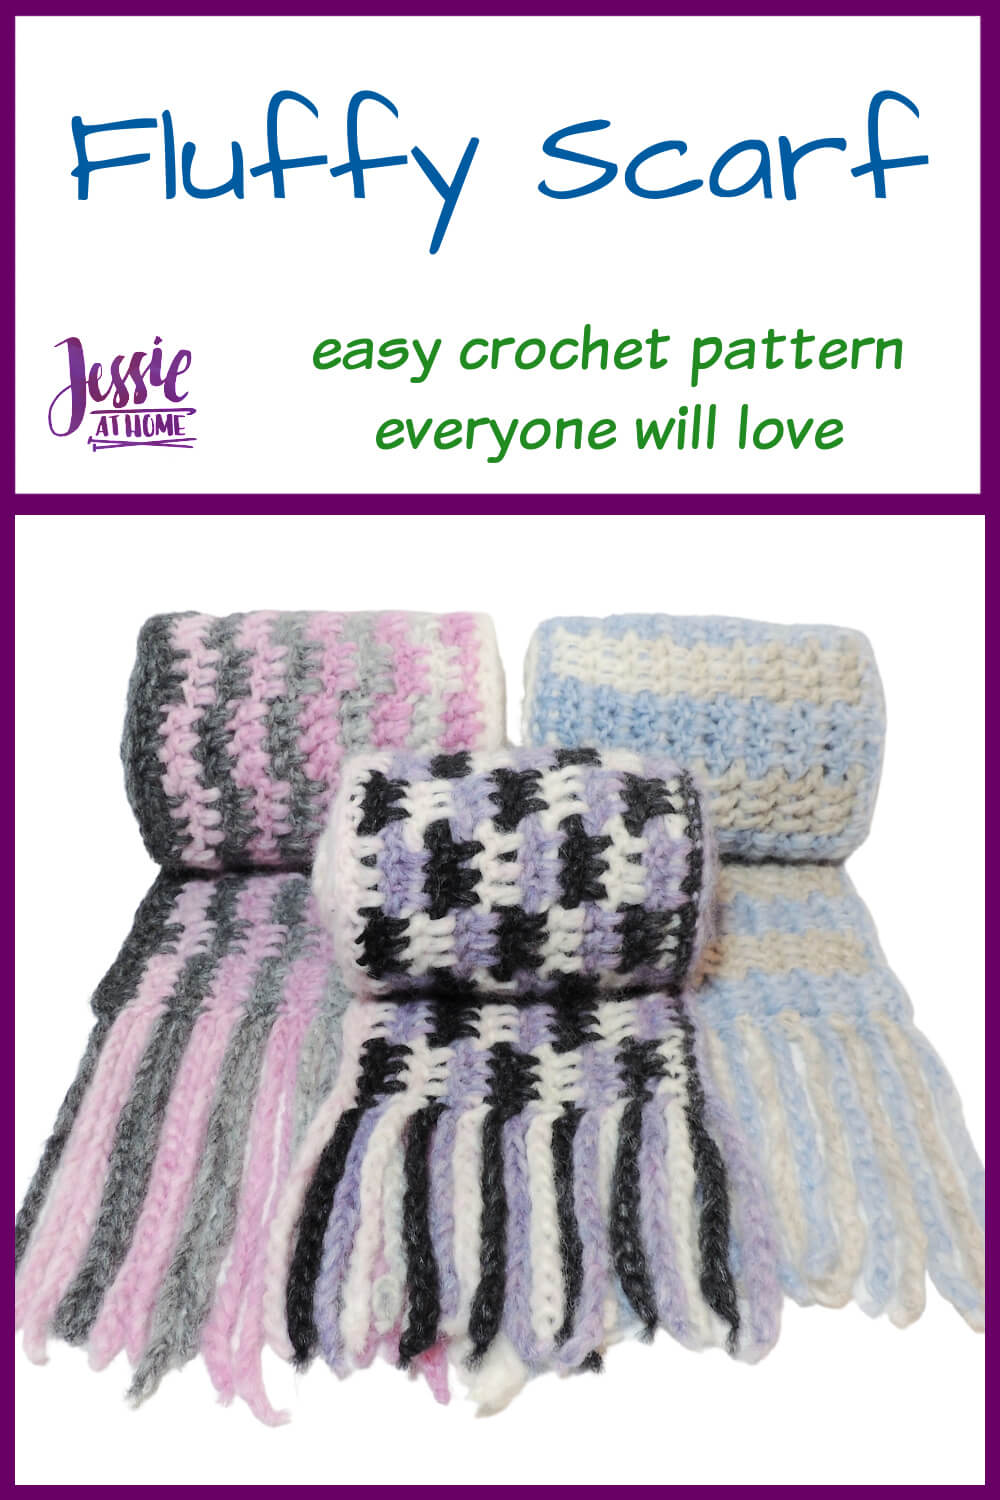 """Vertical white rectangle with a purple border and an image of 3 scarves, each rolled up, on the bottom half. Text on the top reads """"Fluffy Scarf, easy crochet pattern everyone will love, Jessie At Home."""""""